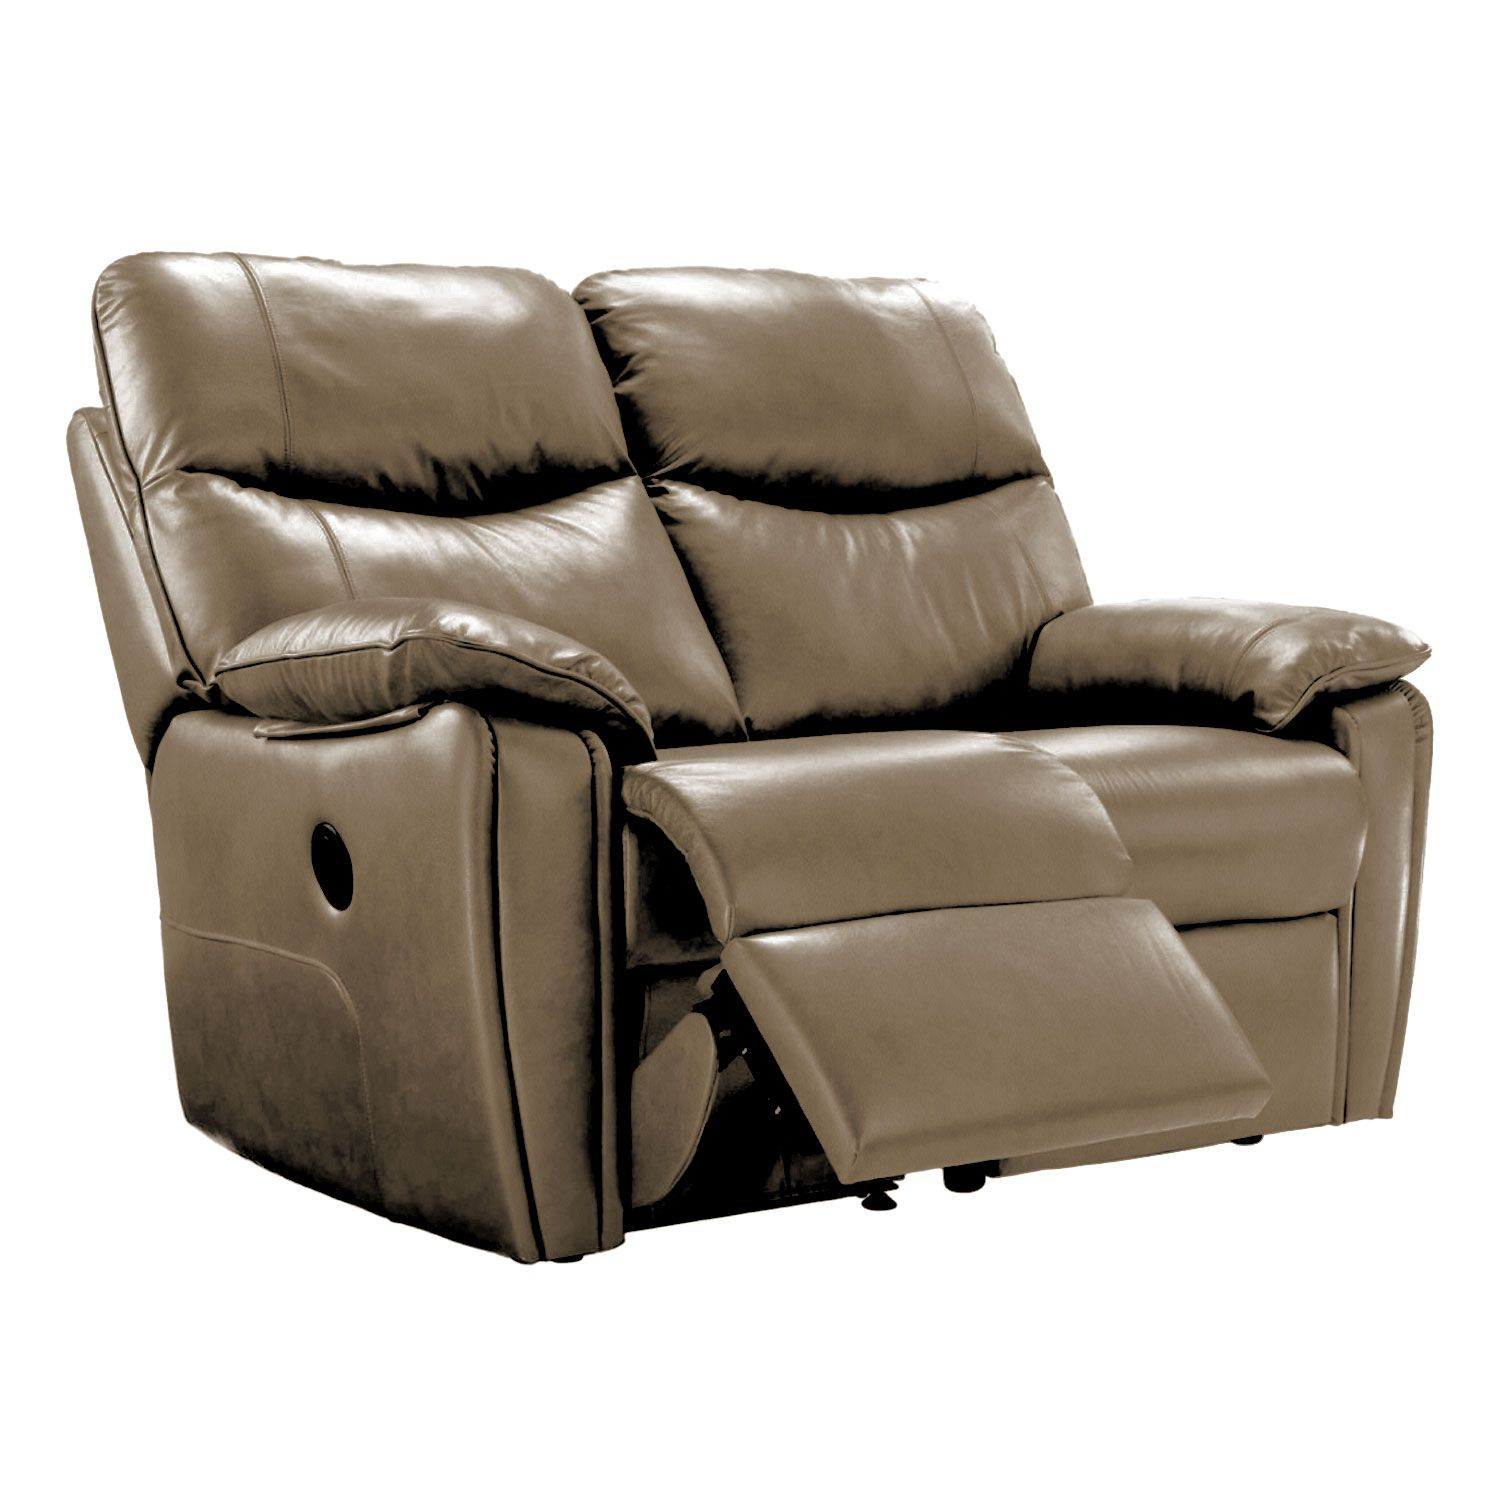 G Plan Henley 2 Seater Left Power Recliner Leather Sofa